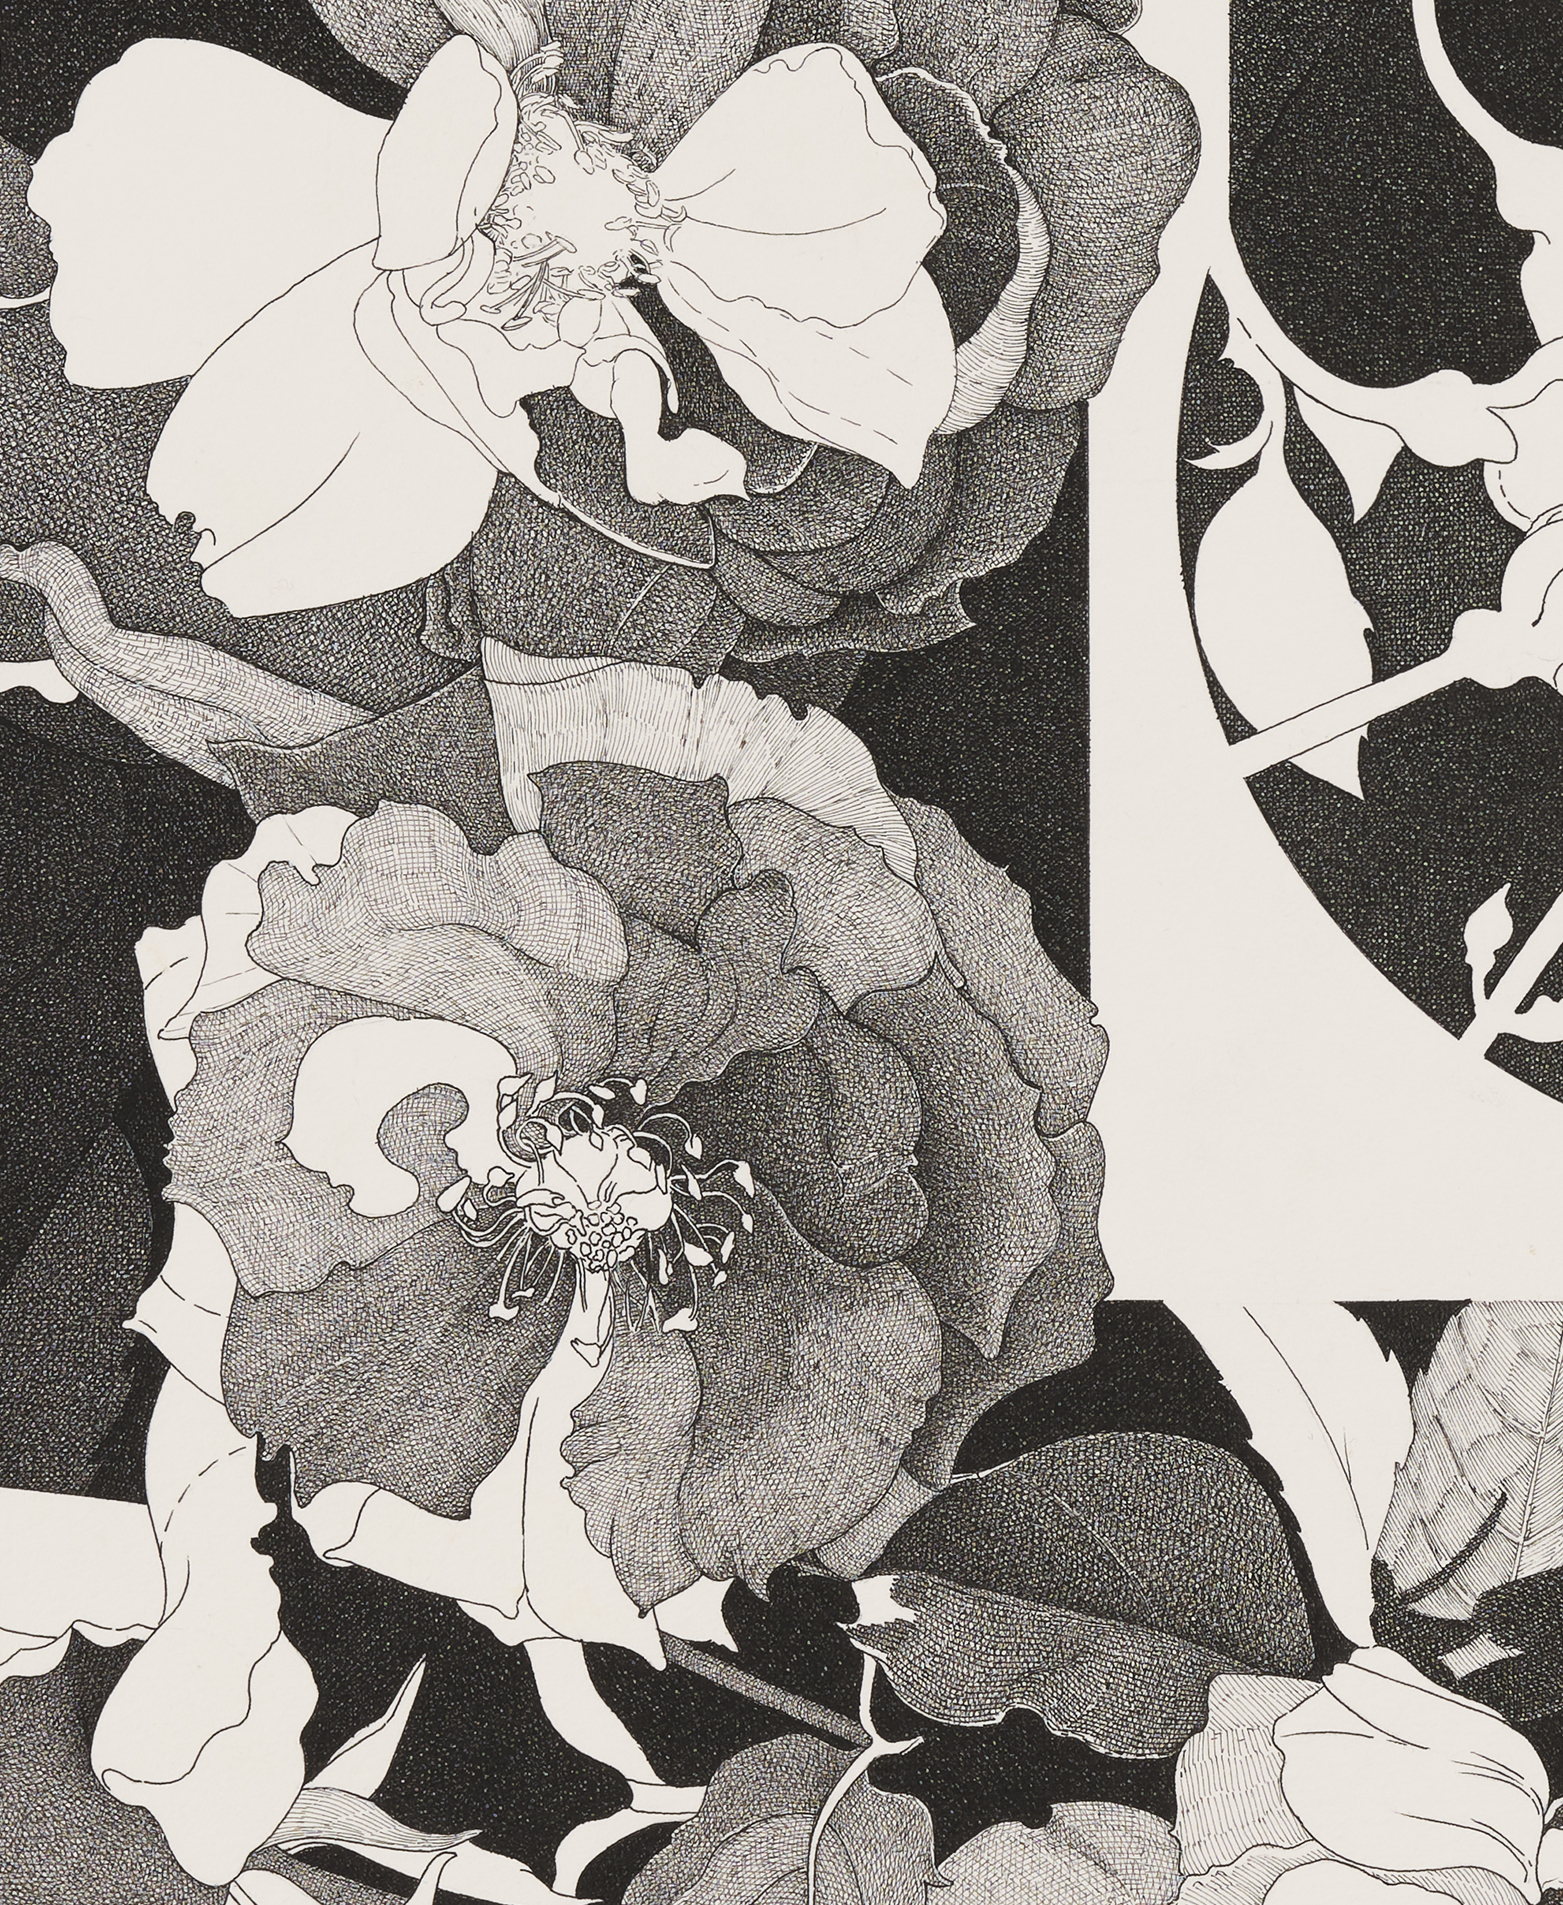 Charmian Johnson, not titled (detail), c. 1978–80, ink on paper, 25 x 26 in. (64 x 67 cm) by